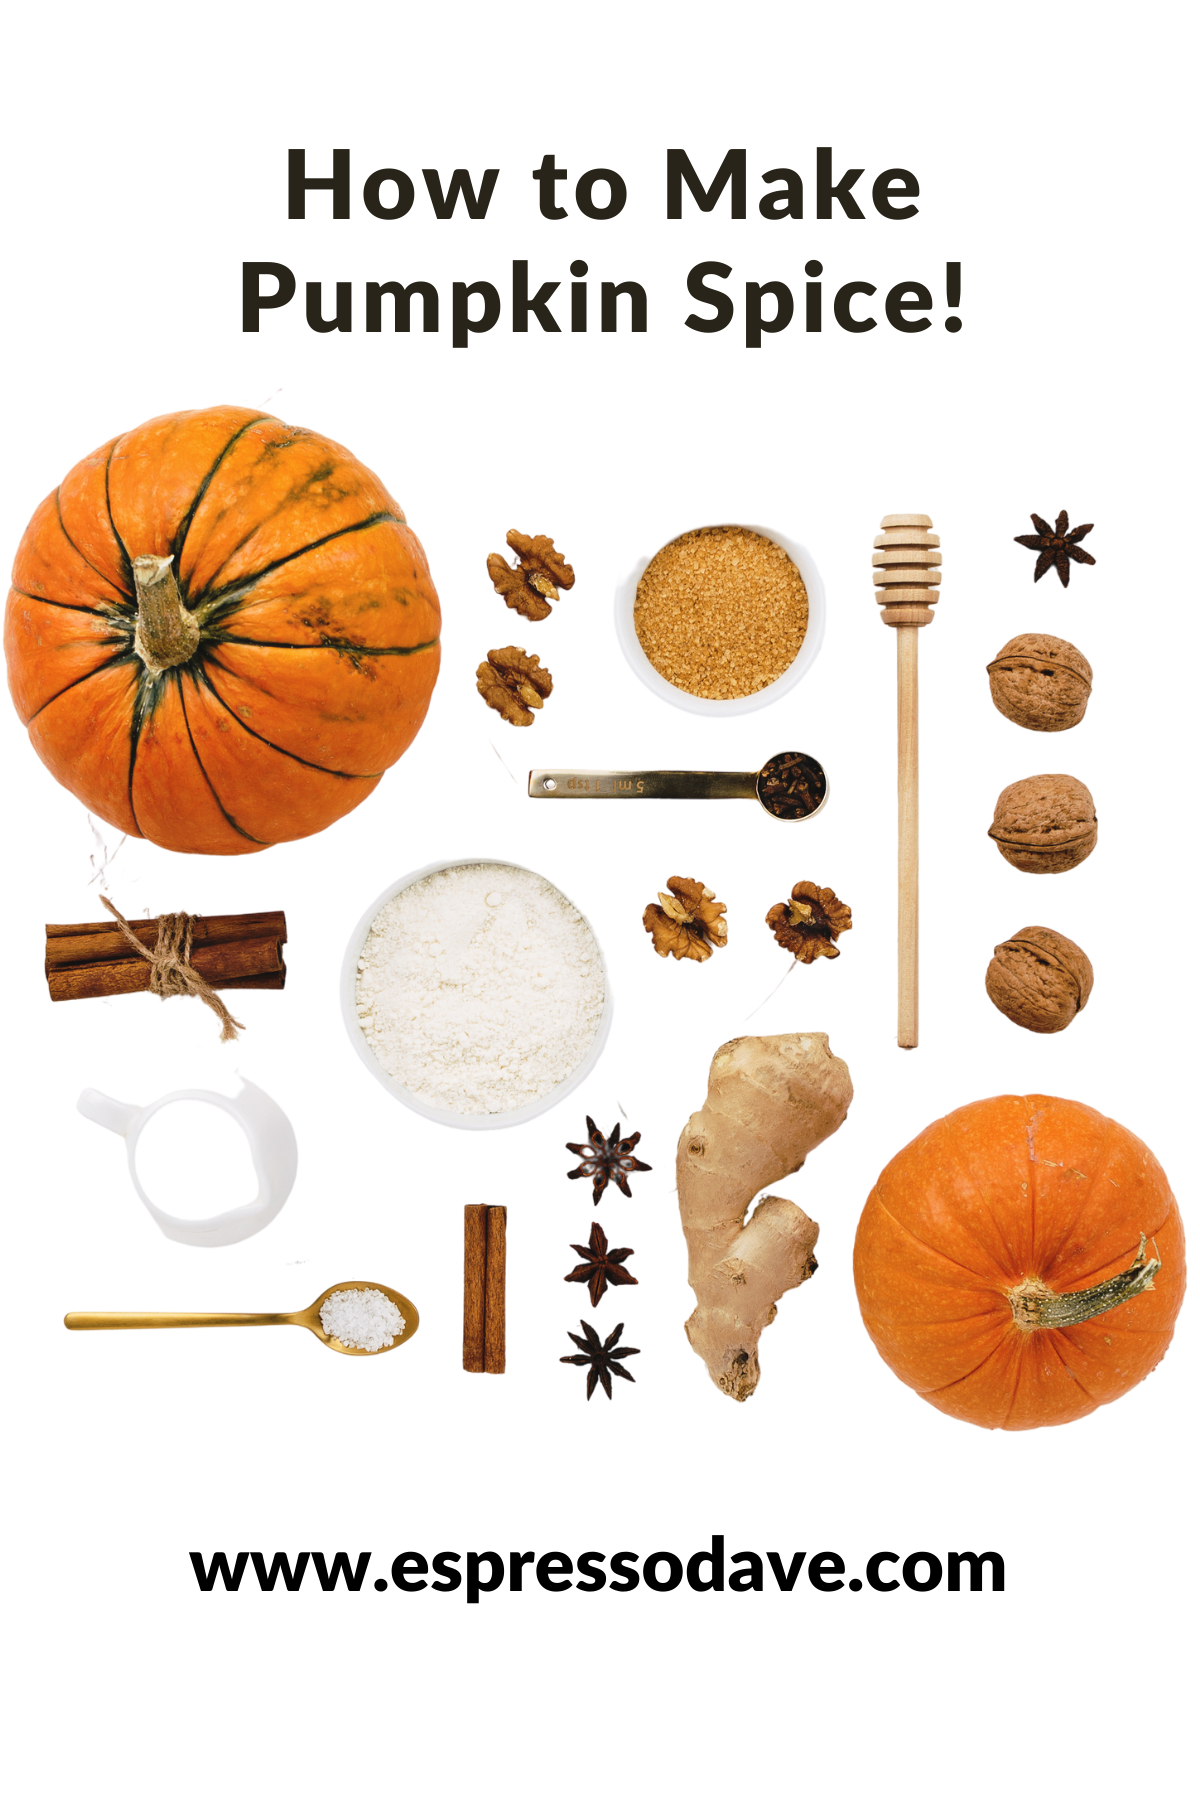 Make your own fresh Pumpkin Spice Blend! Check out this super easy DIY recipe from Boston's Espresso Dave Coffee Catering! www.espressodave.com